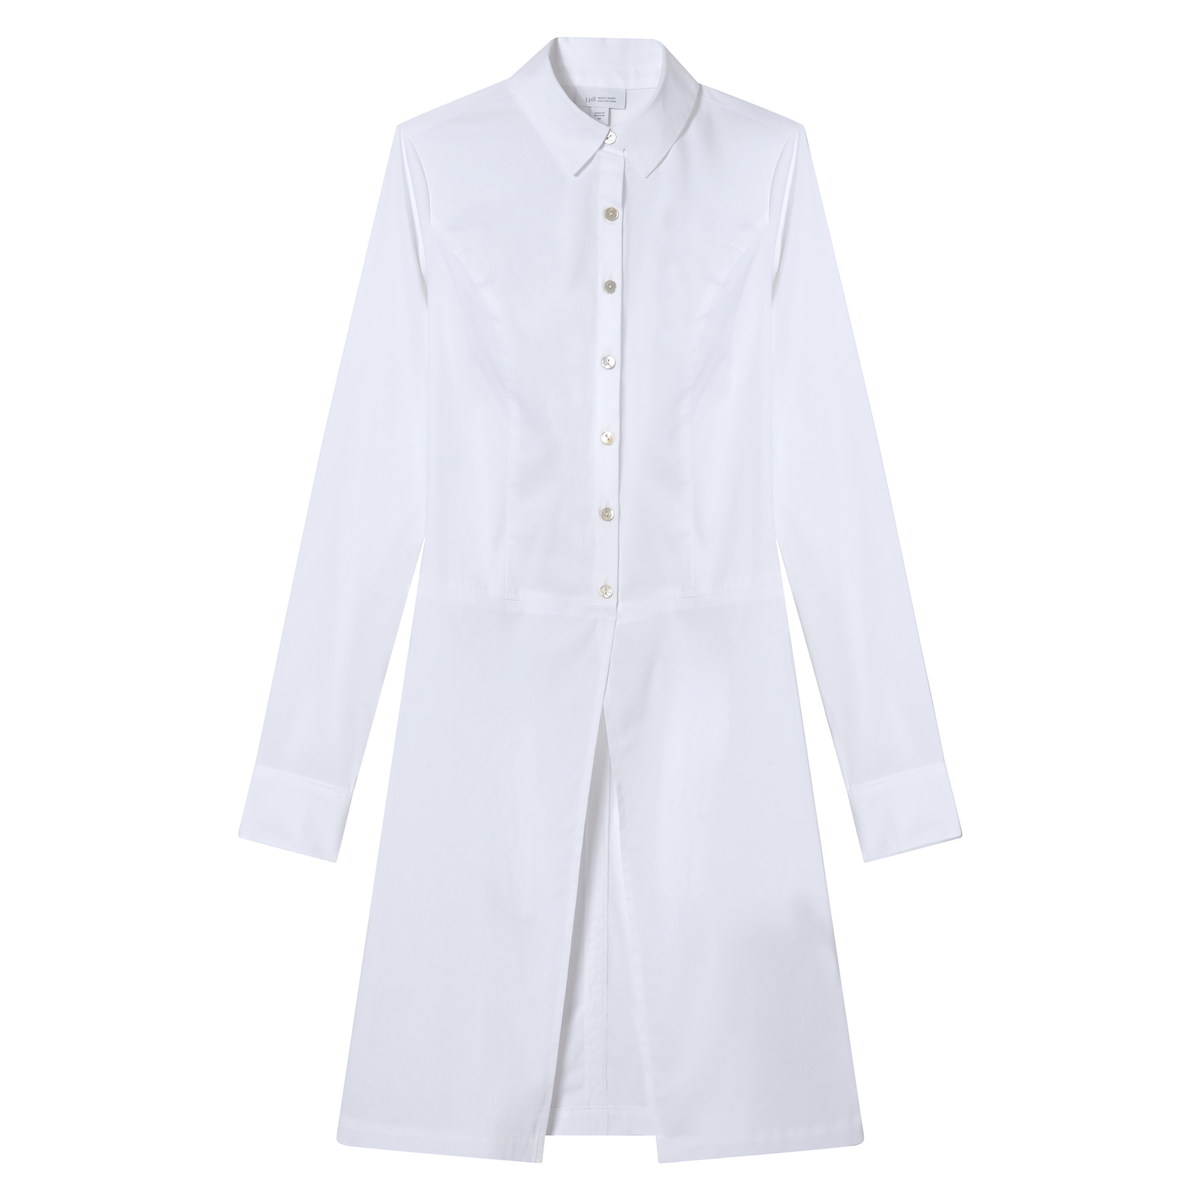 women's white tunic with long sleeves